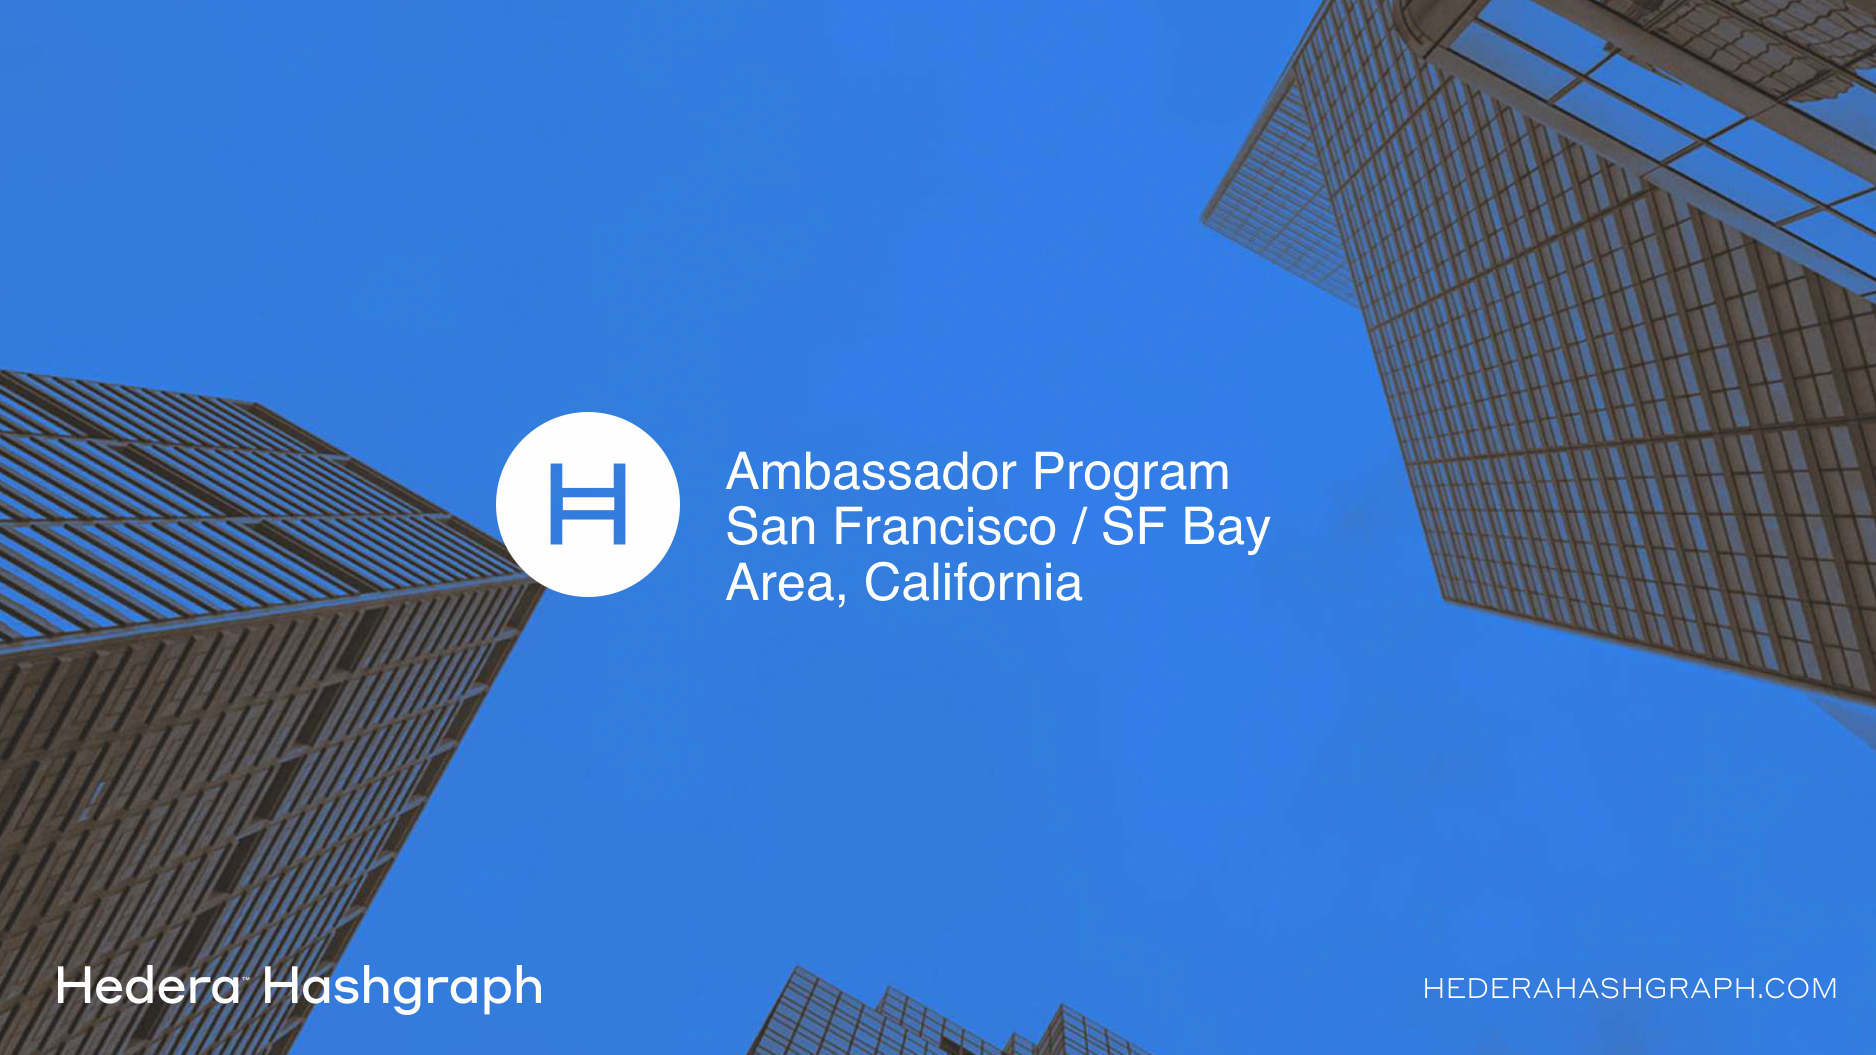 Hedera Hashgraph - San Francisco / SF Bay Area